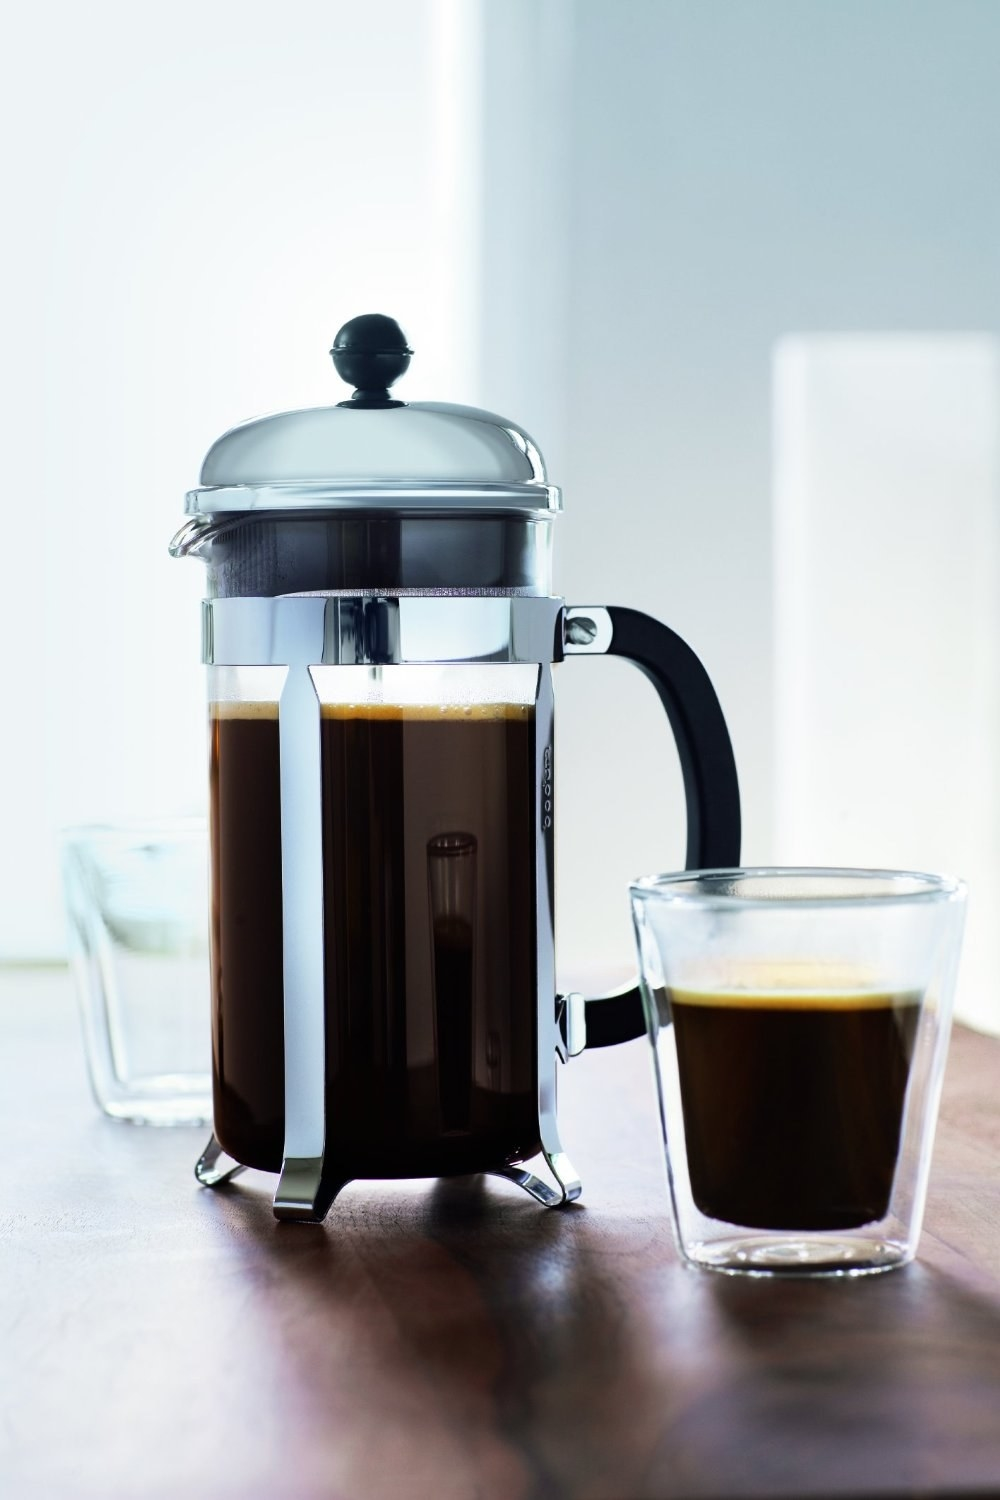 the French press next to a cup of coffee